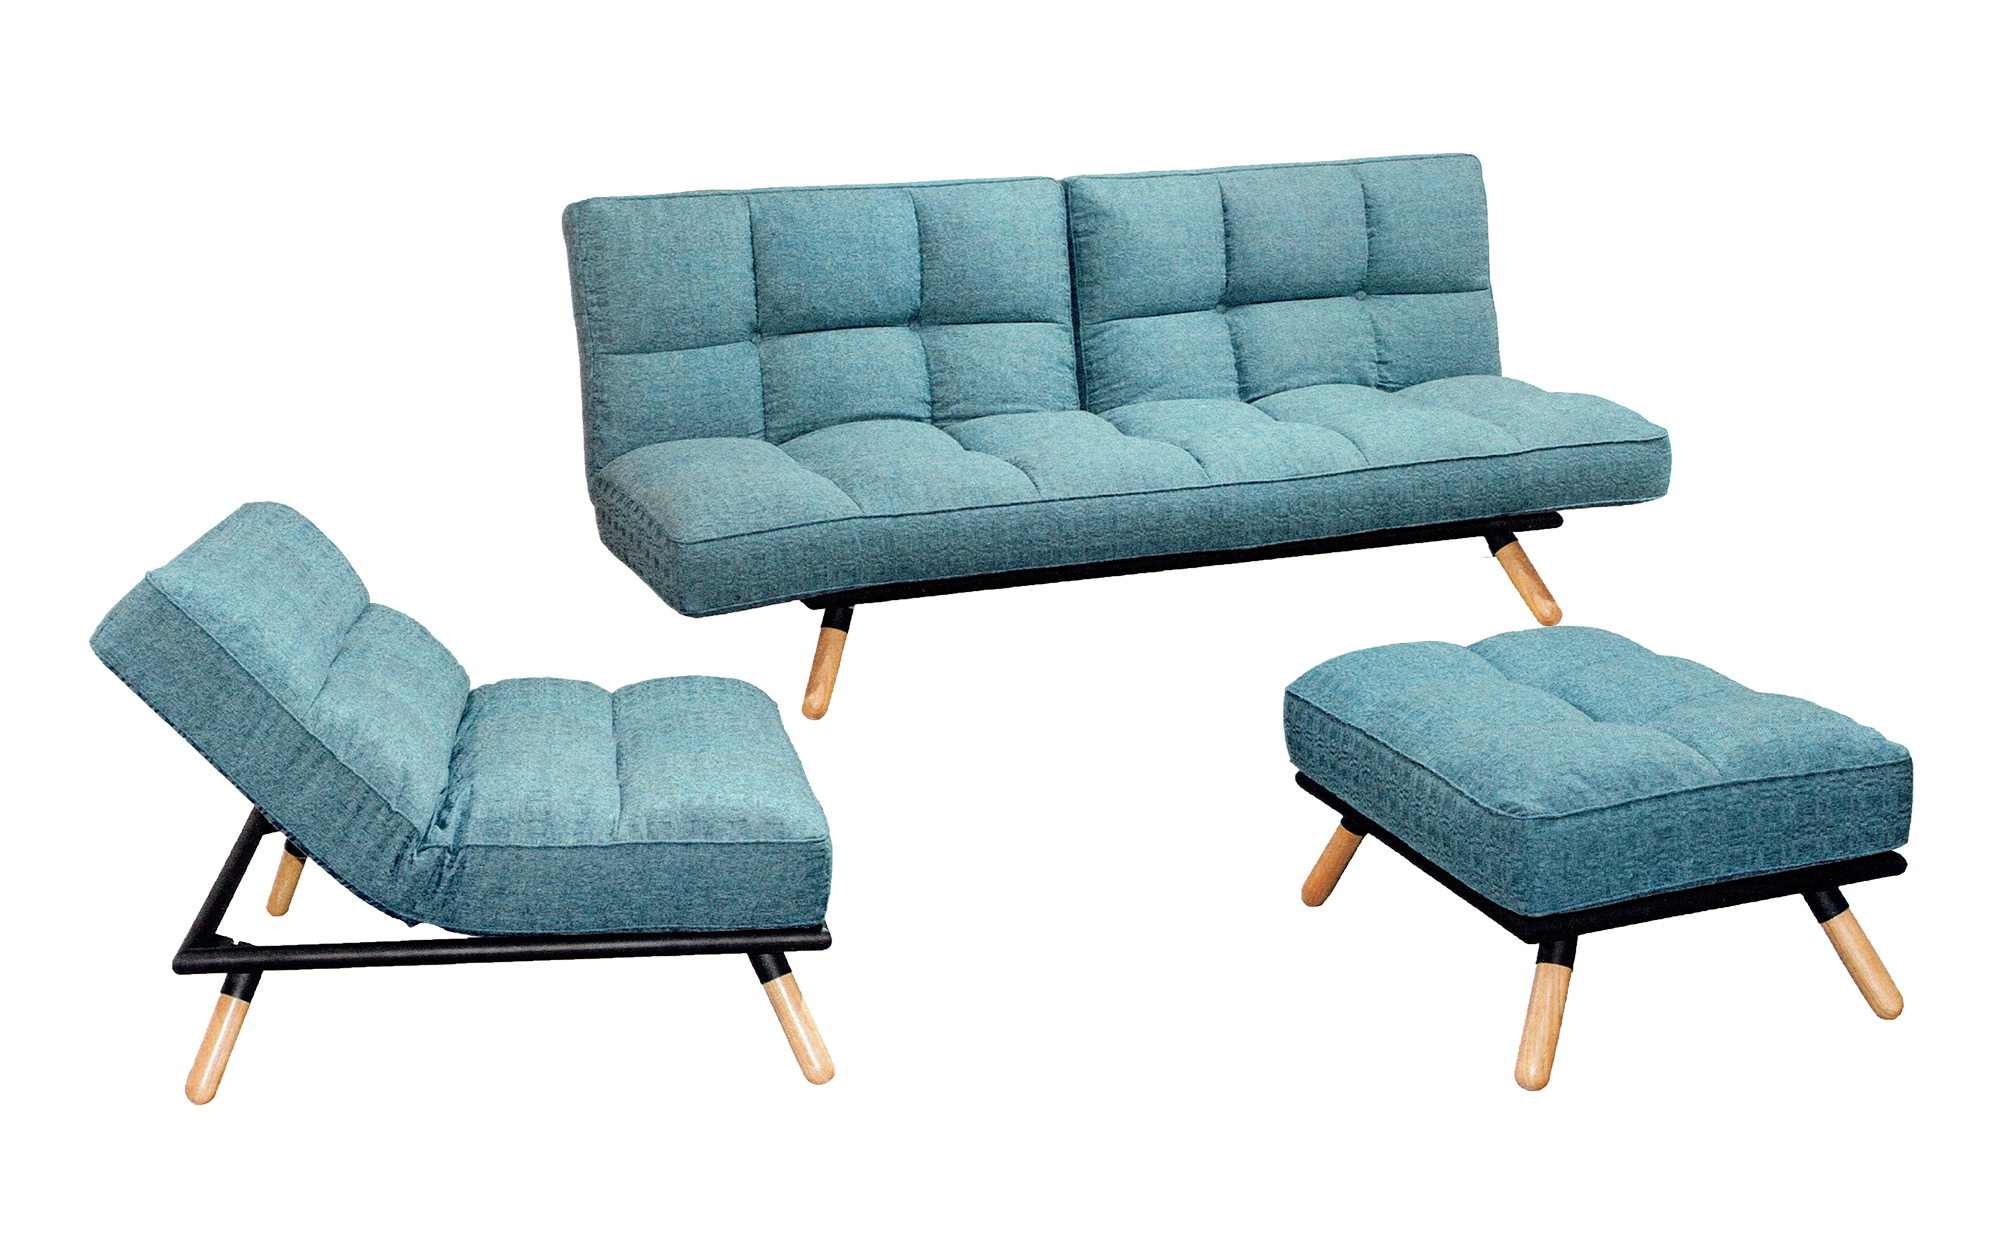 sofa bed penama set.jpg